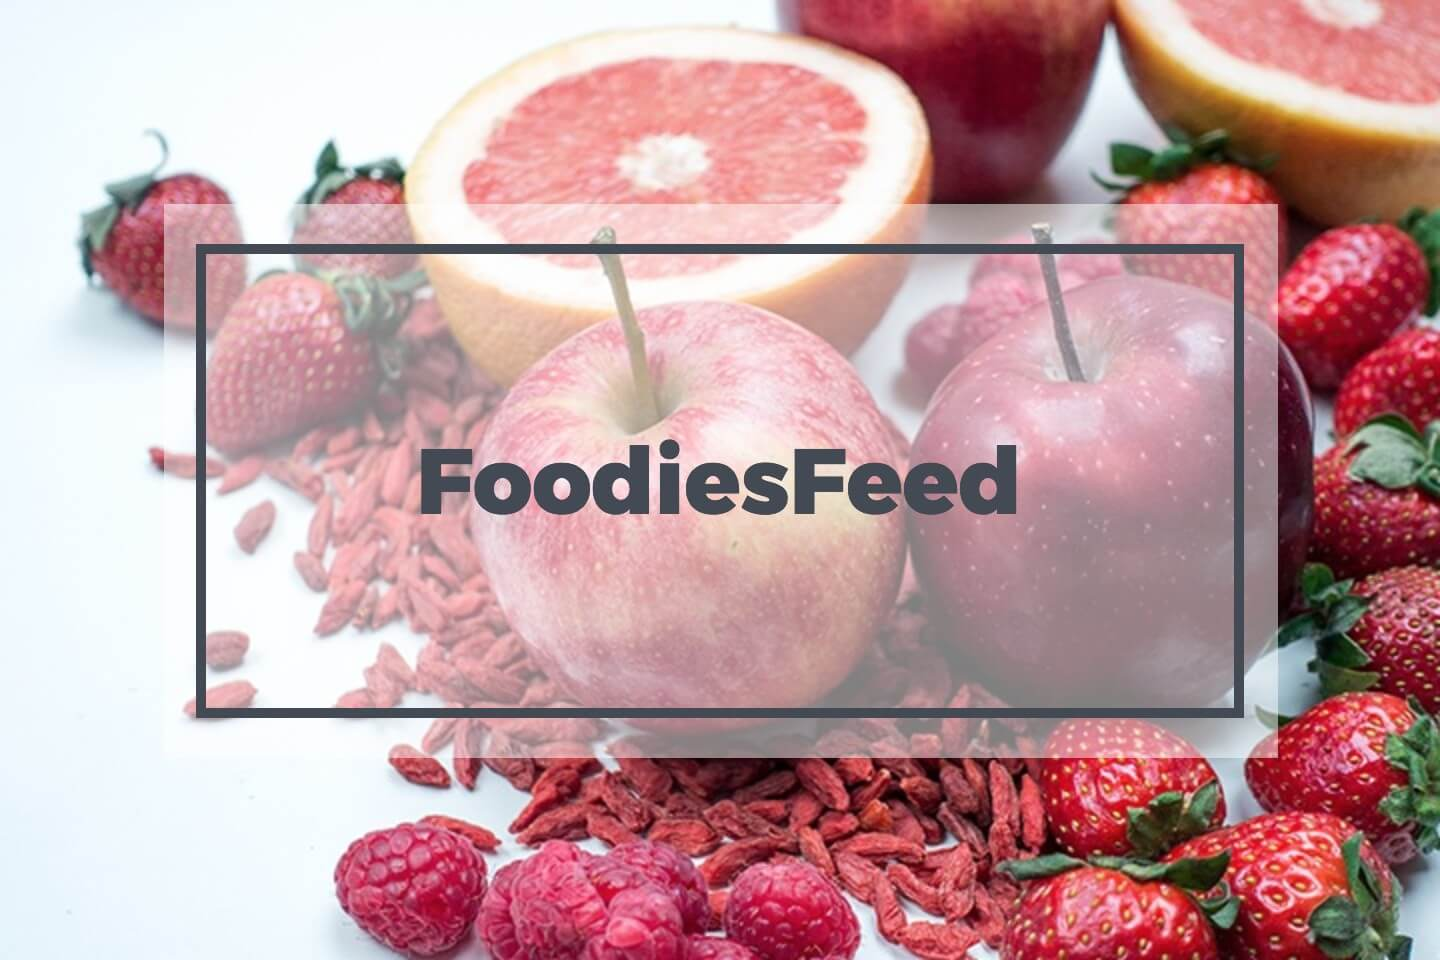 foodies-feed